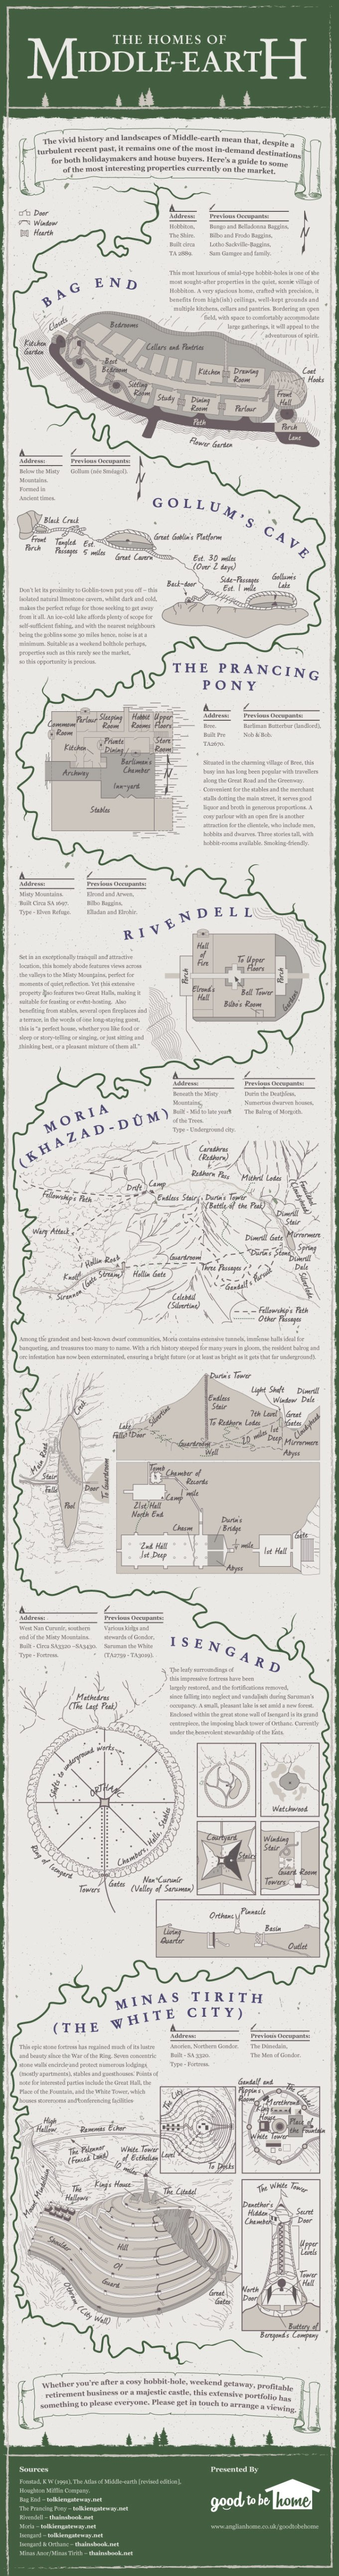 the-homes-of-middle-earth-infographic